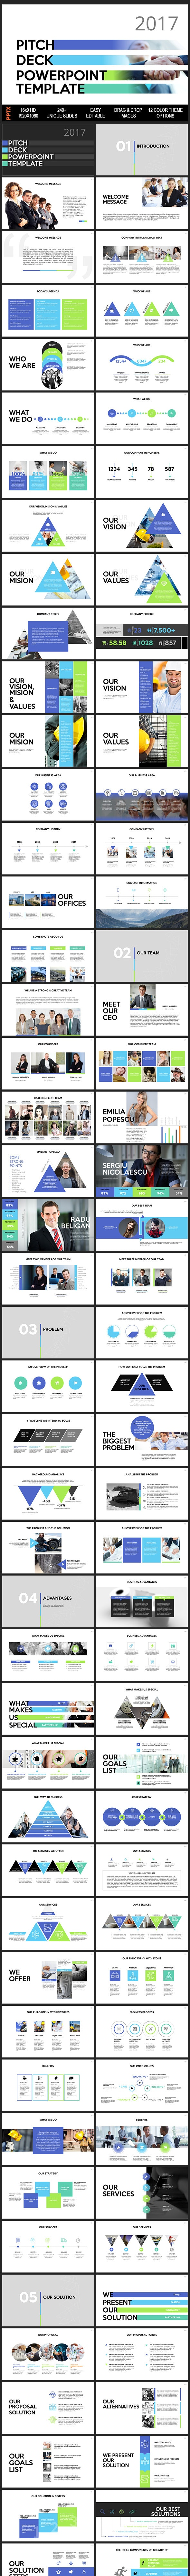 2017 PITCH DECK Powerpoint Presentation Template - PowerPoint Templates Presentation Templates